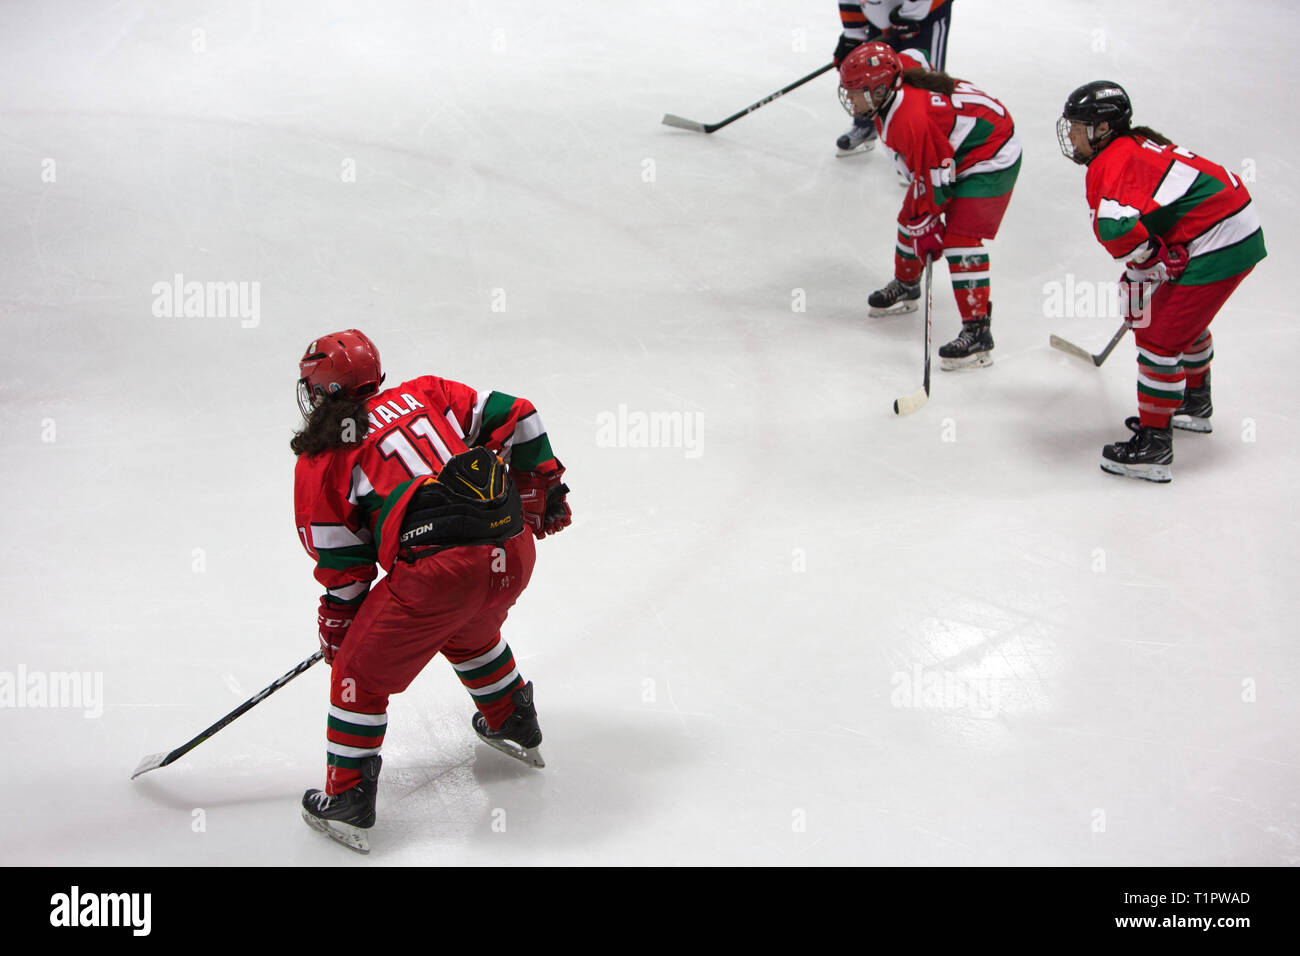 """The Selección femenil de México de hockey sobre hielo, plays against the Buffalos Metepec in the """"Midget"""" Hockey League during a match at the Winter Sports Center Metepec in Metepec, State of Mexico, Mexico on February 15, 2019. The score was 3-3. Founded in 2012, the Selección femenil de México de hockey sobre hielo is the first and only women's national ice hockey team in Mexico, a country where ice rinks are expensive and rare. In the 2017 IIHF Women's World Championship Division II in Iceland, the team defied expectations; They wonGroup B, securing their promotion to Group A,andbecamet - Stock Image"""